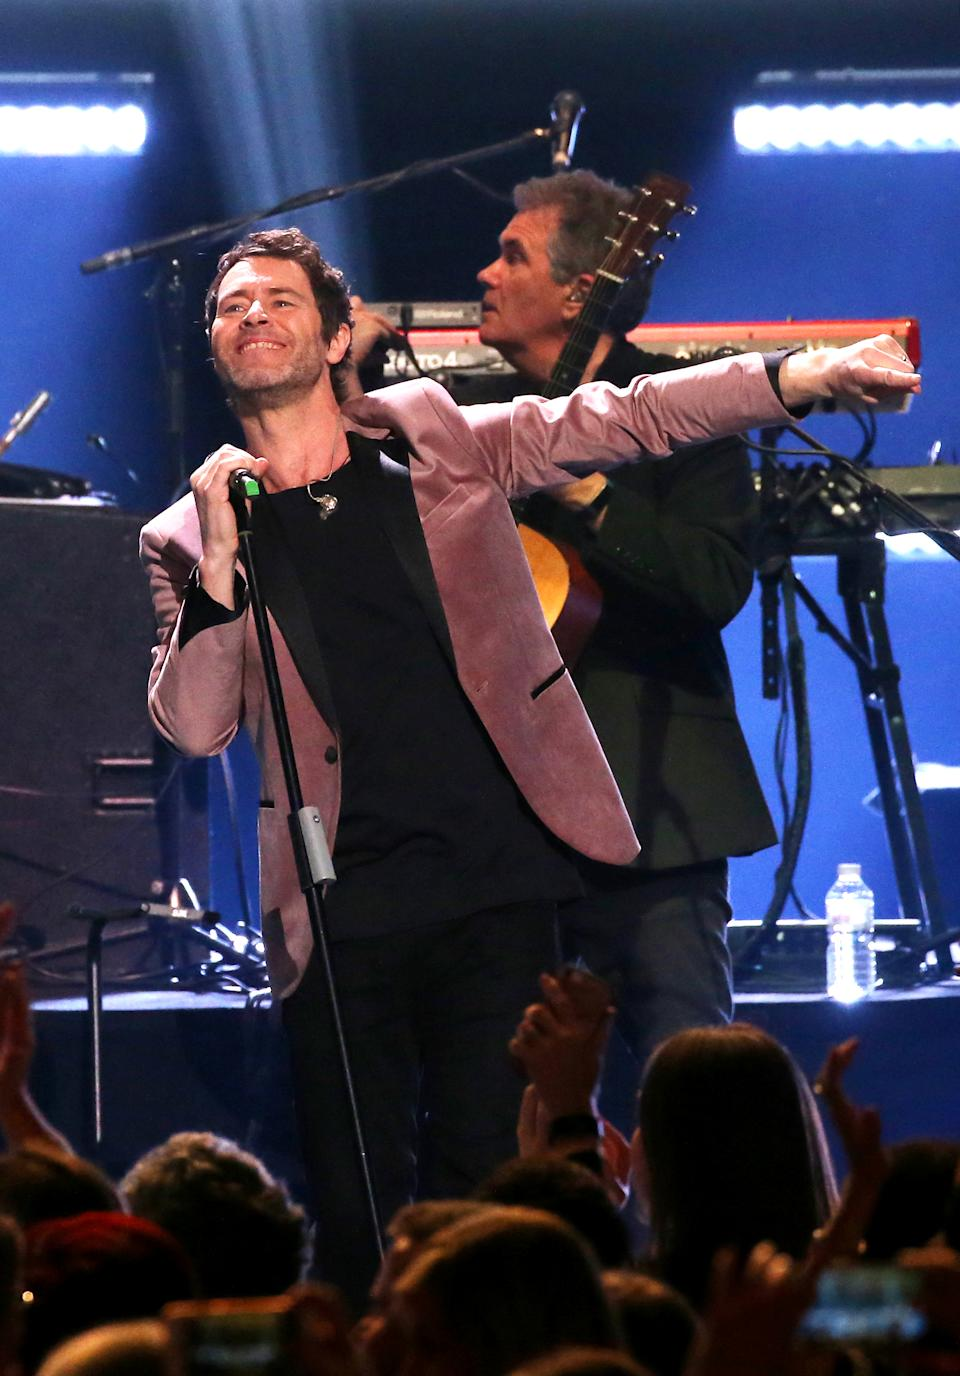 Howard Donald of Take That performs at the Teenage Cancer Trust Concert, Royal Albert Hall, London. PRESS ASSOCIATION. Picture date: Thursday March 28, 2019. See PA story SHOWBIZ TCT. Photo credit should read: Isabel Infantes/PA Wire